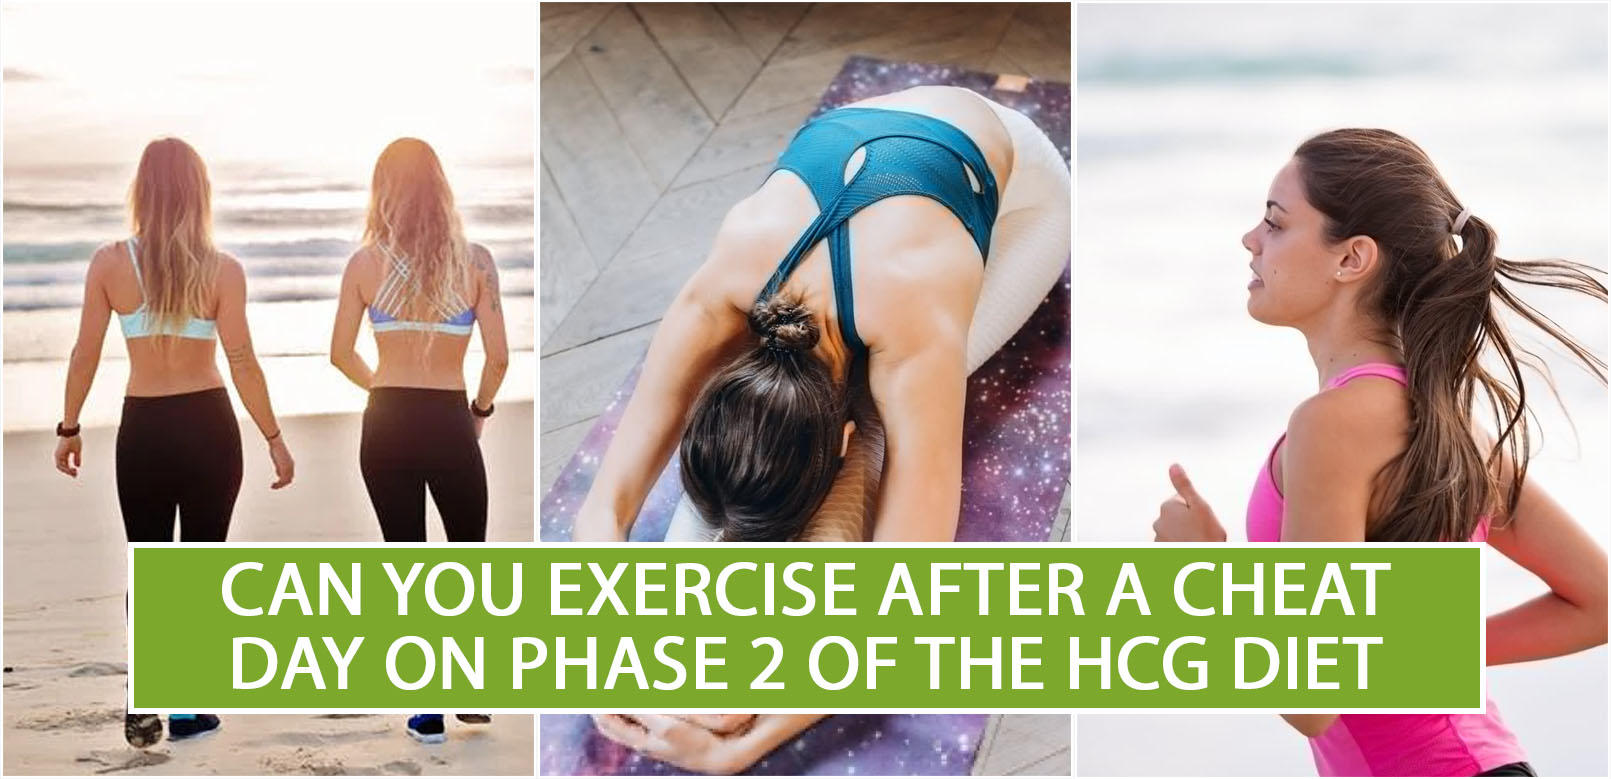 CAN YOU EXERCISE AFTER A CHEAT DAY ON PHASE 2 OF THE HCG DIET